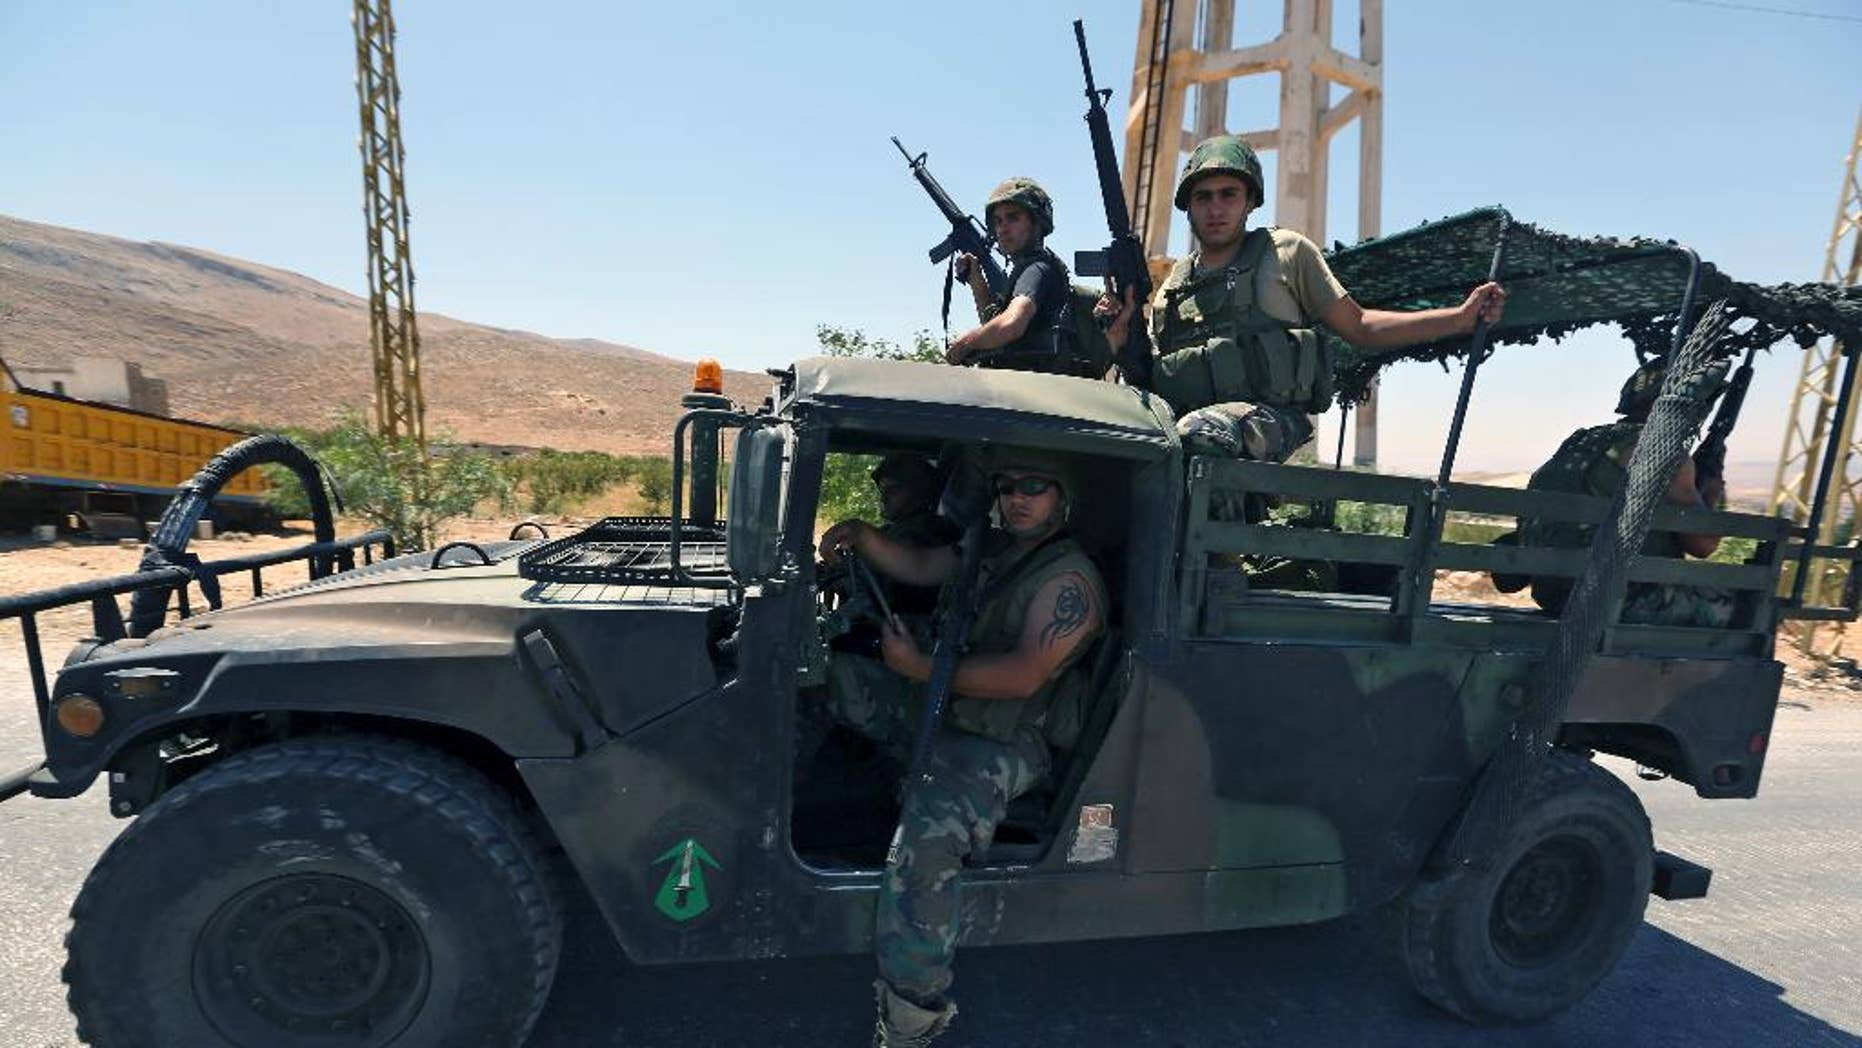 Lebanese army soldiers sit inside a Humvee as reinforcements arrive to the outskirts of Arsal, a predominantly Sunni Muslim town near the Syrian border in eastern Lebanon, Monday, Aug. 4, 2014. Thousands of Lebanese civilians and Syrian refugees packed cars and pickup trucks Monday, fleeing an eastern border town that was overrun by militants from neighboring Syria as Lebanese troops fight to liberate the area. (AP Photo/Bilal Hussein)